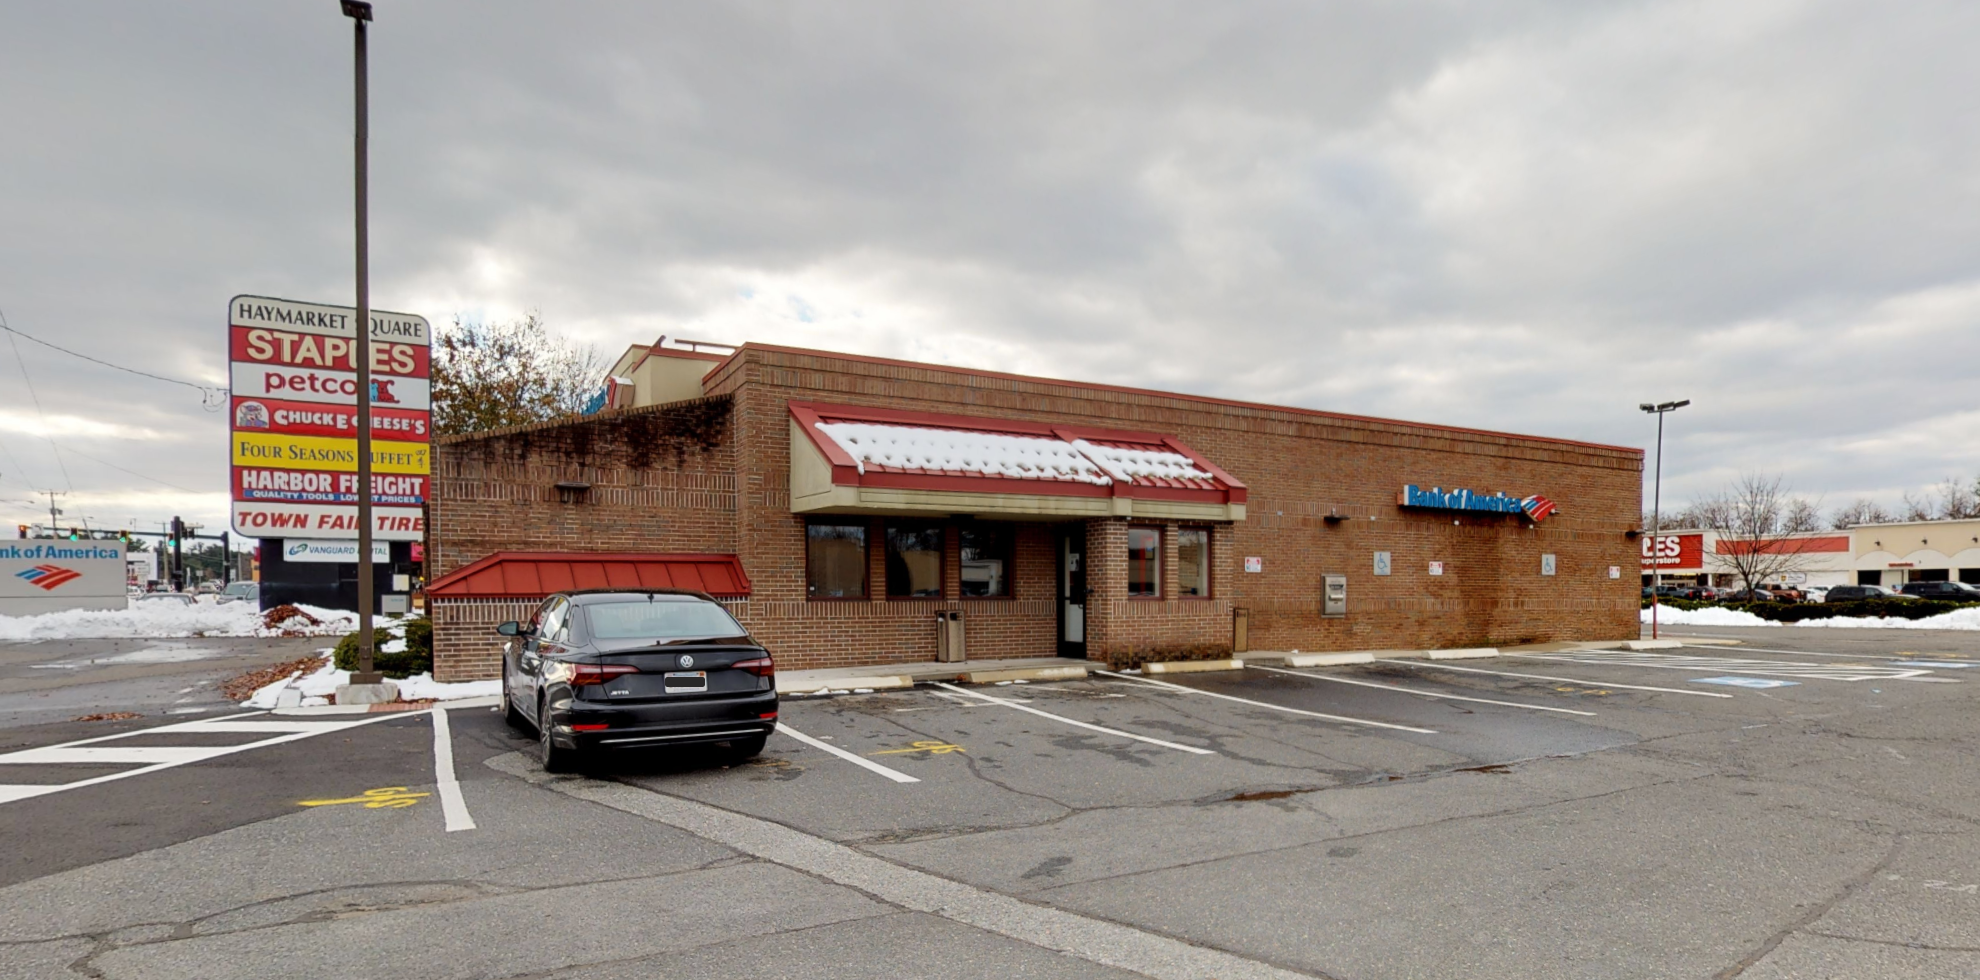 Bank of America financial center with drive-thru ATM   1724 Boston Rd, Springfield, MA 01129